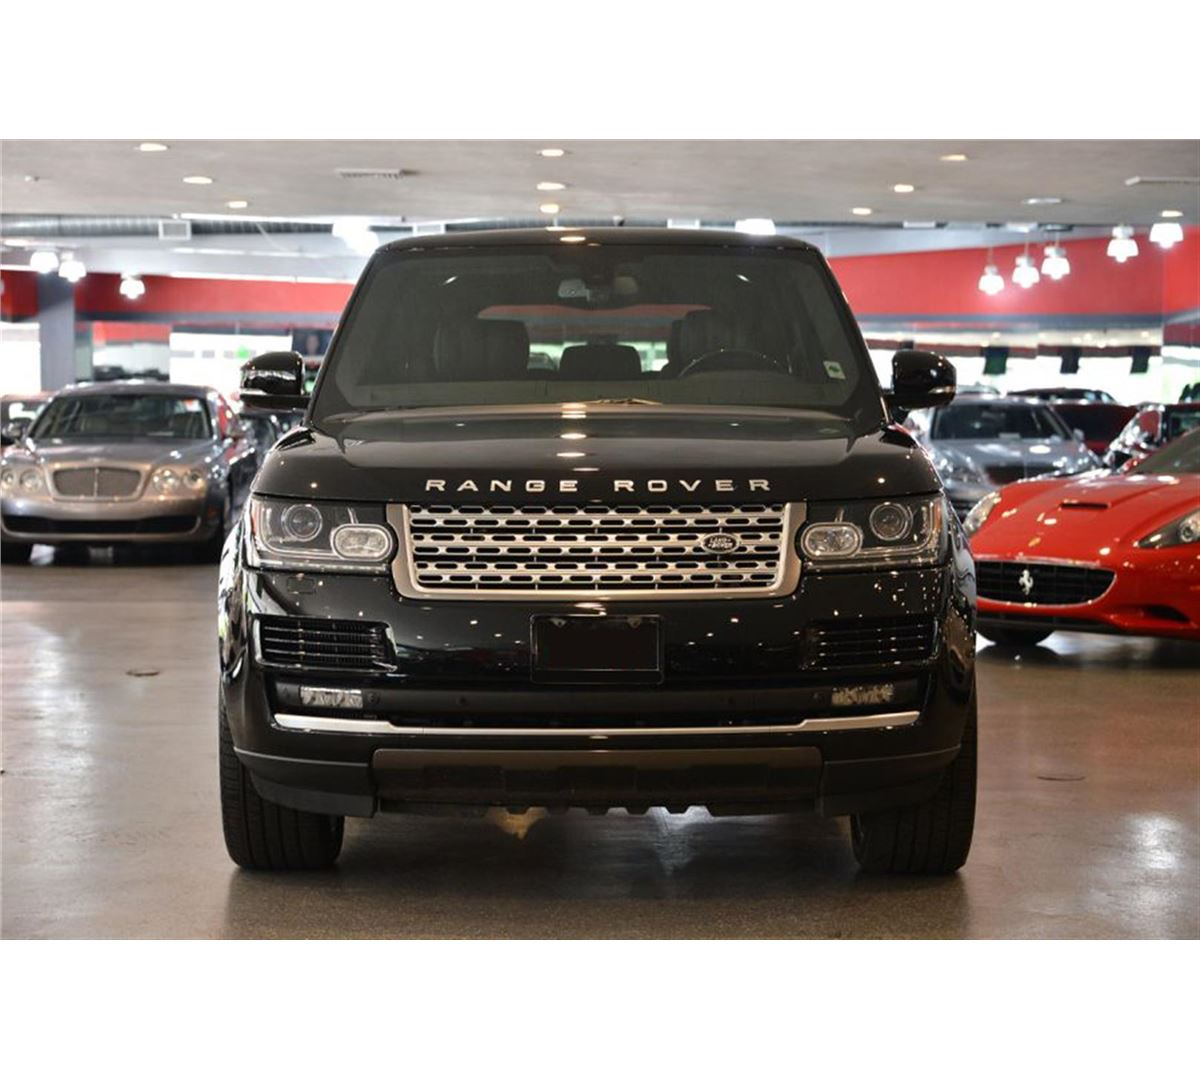 2013 Black Land Rover Range Rover Supercharged SUV